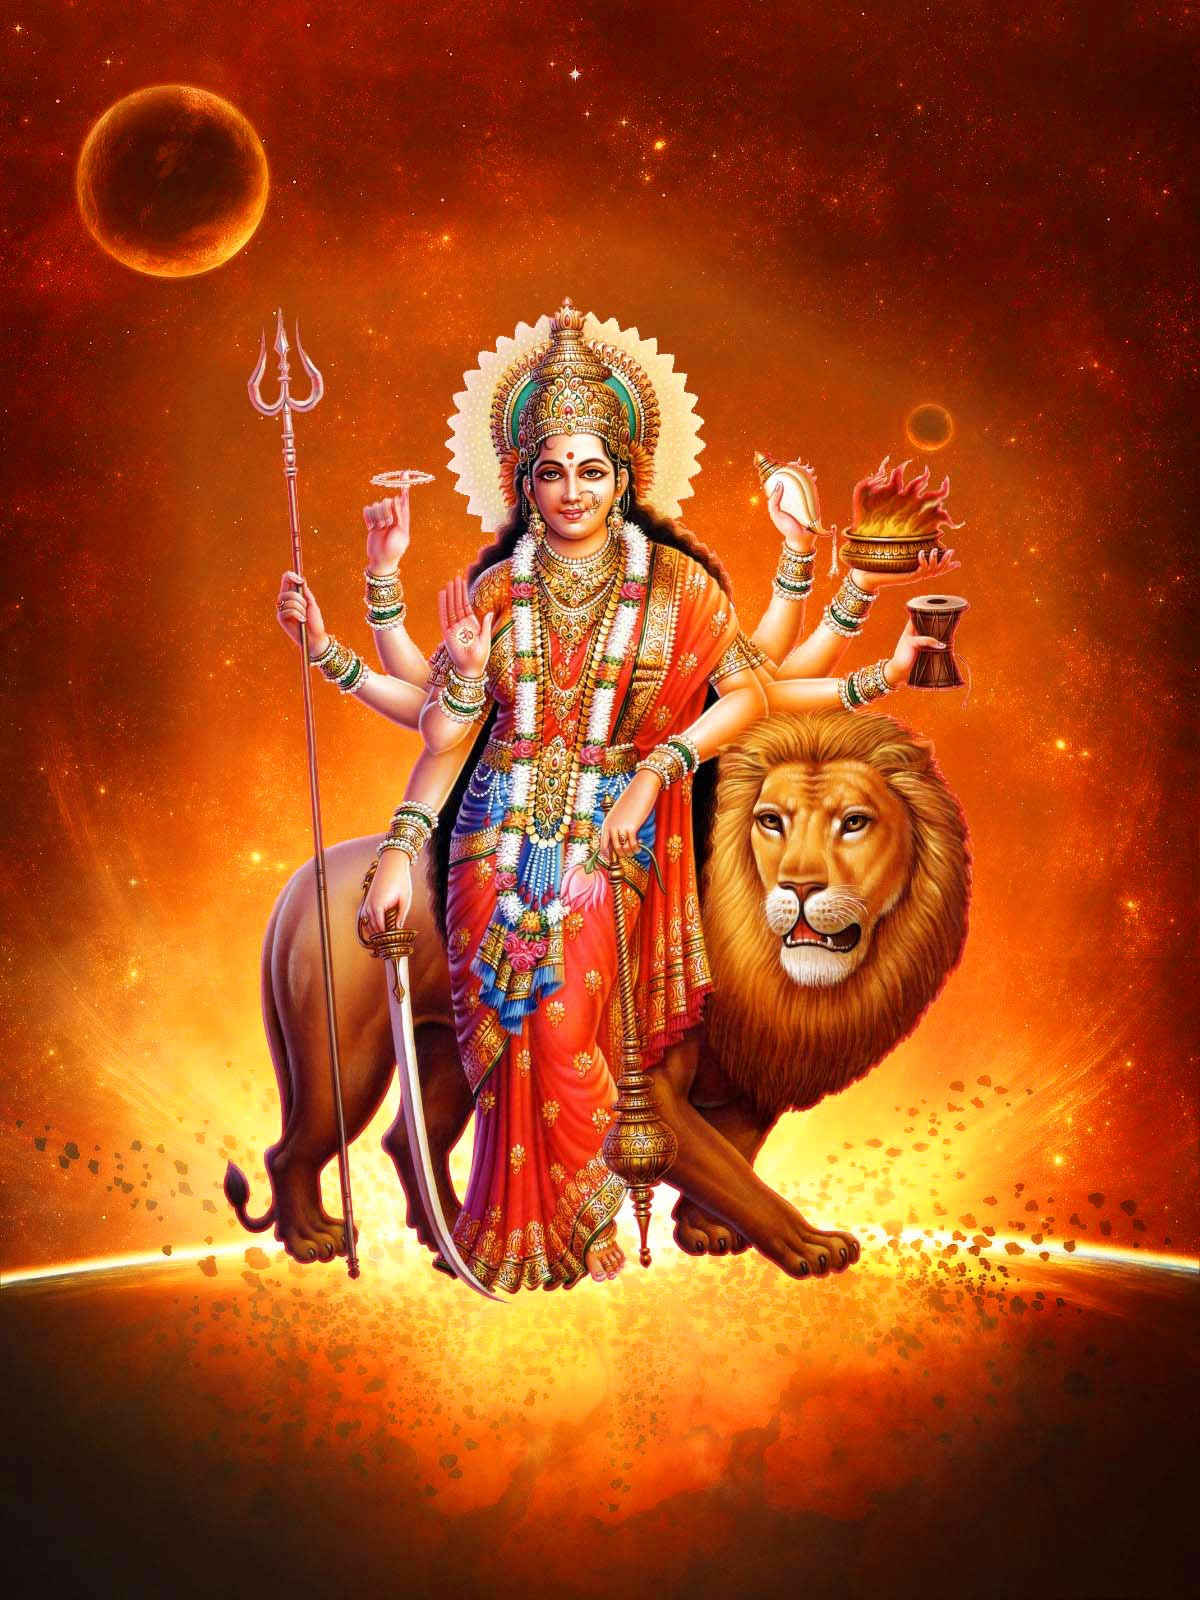 Latest Durga Maa Images wallpaper for free download